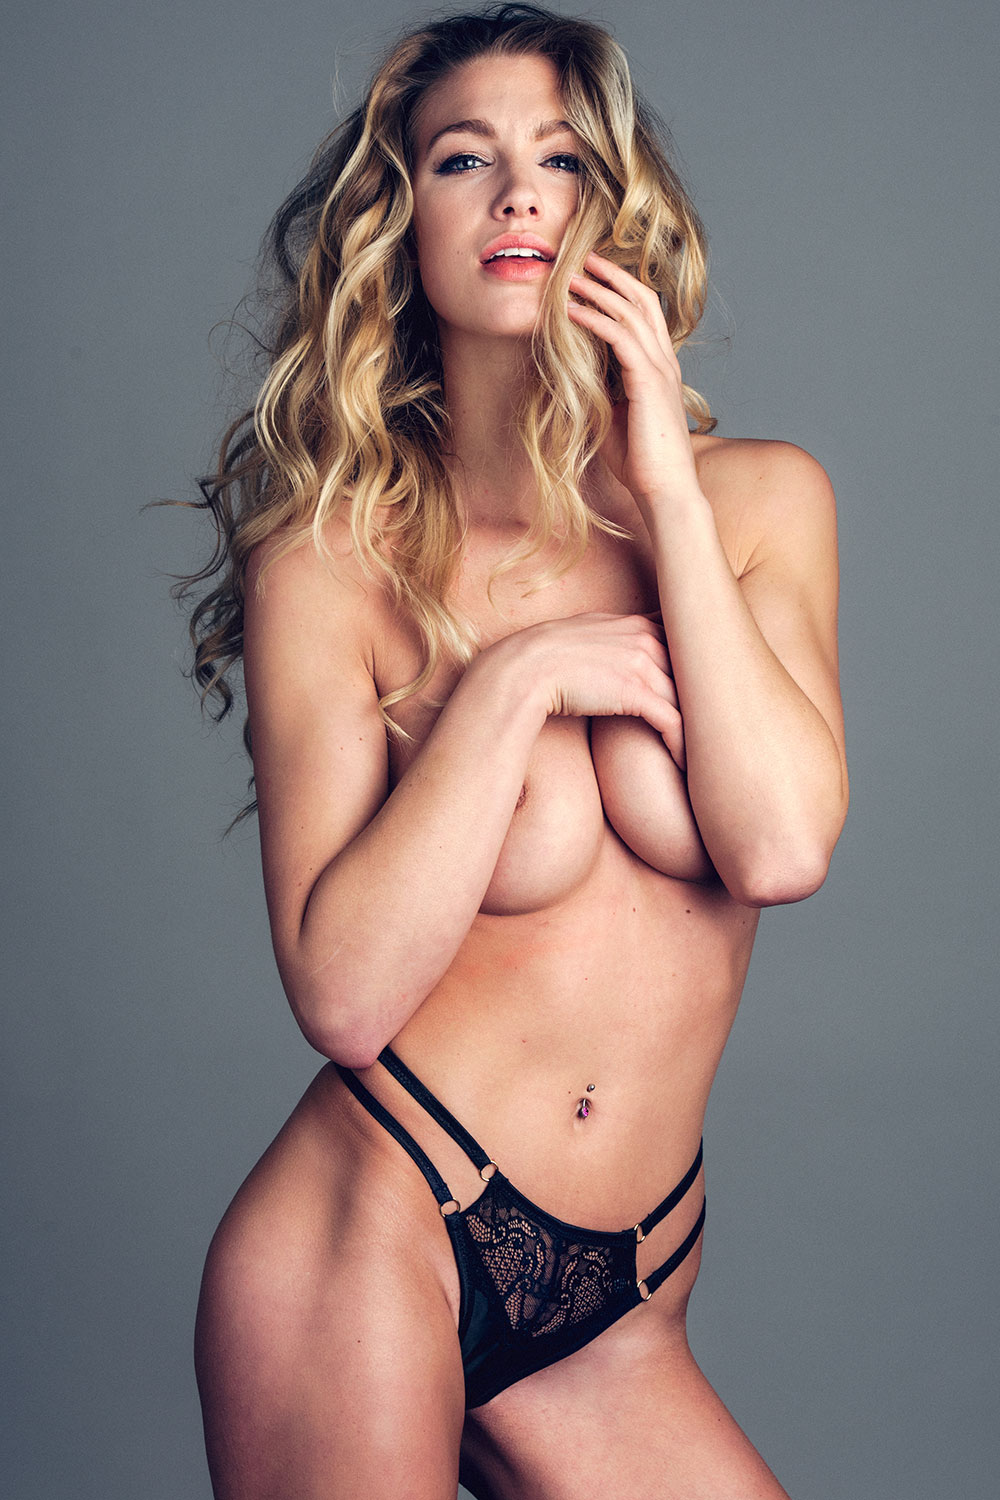 Topless Pics Of Jo From K...